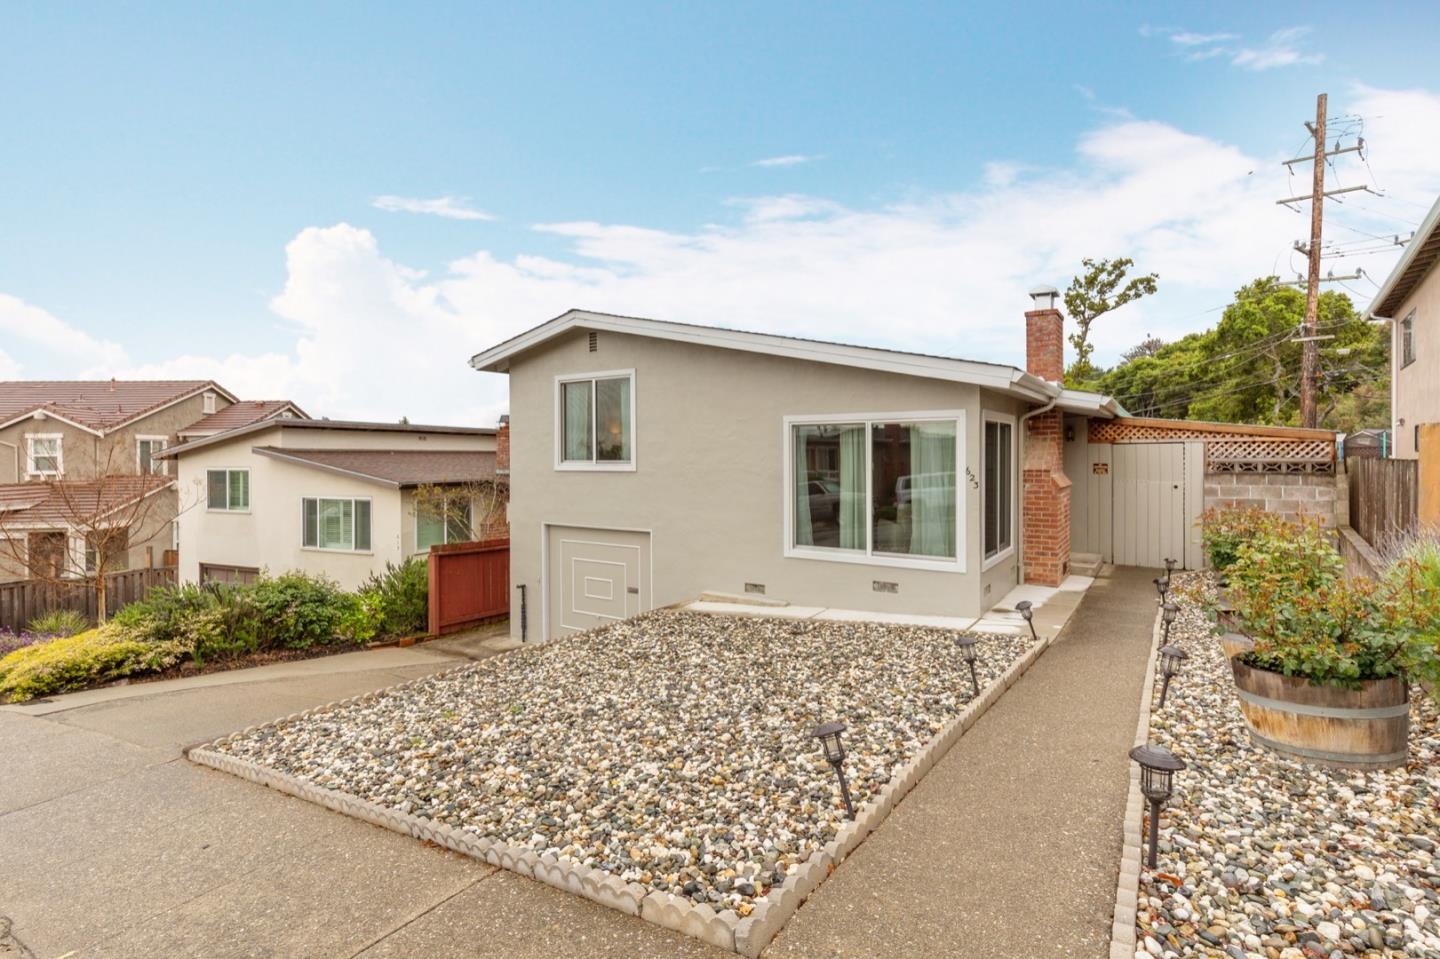 Detail Gallery Image 1 of 1 For 623 Pepper Dr, San Bruno, CA 94066 - 3 Beds | 1 Baths